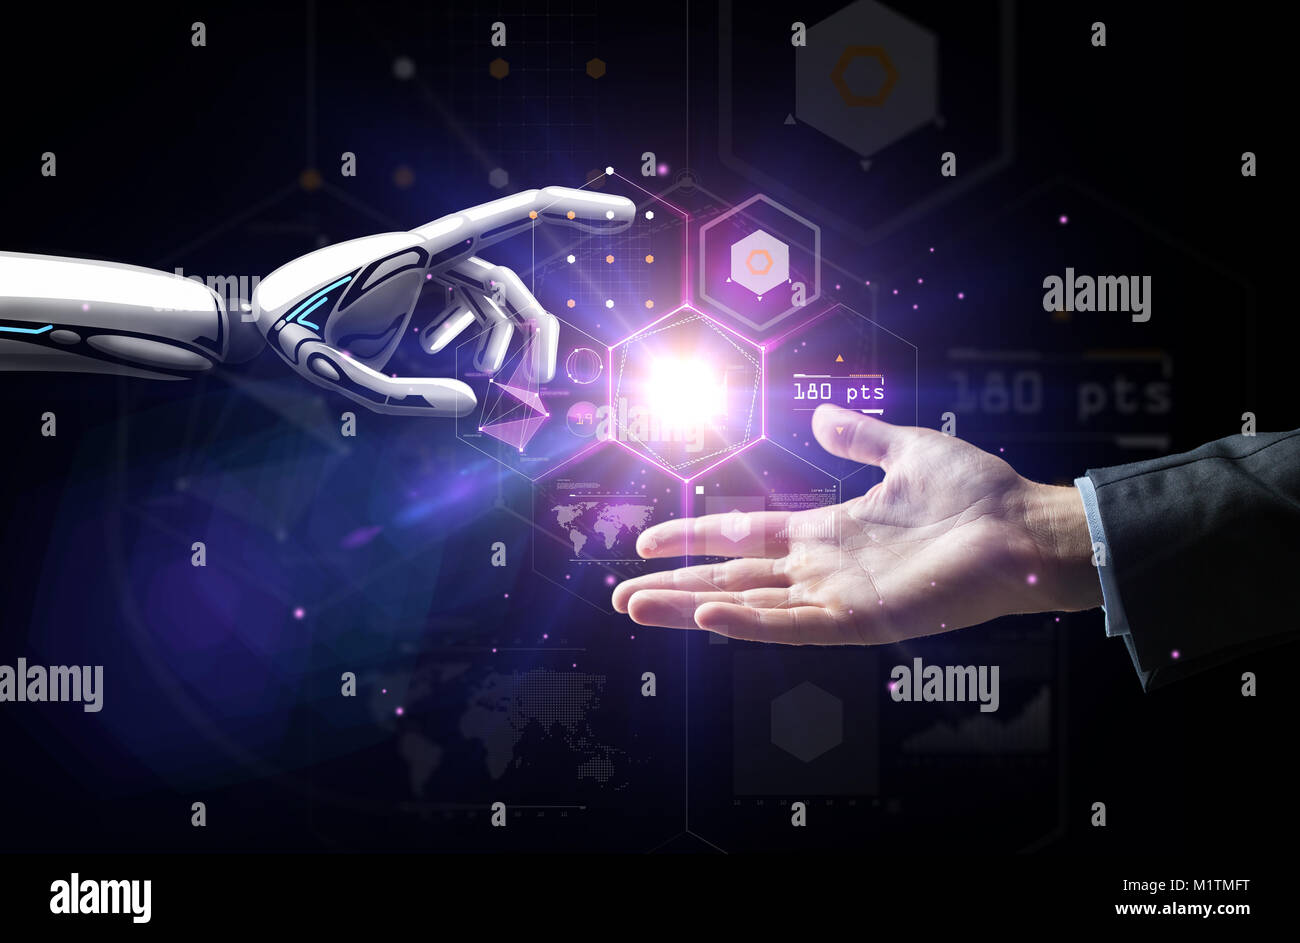 robot and human hand over virtual projection Stock Photo